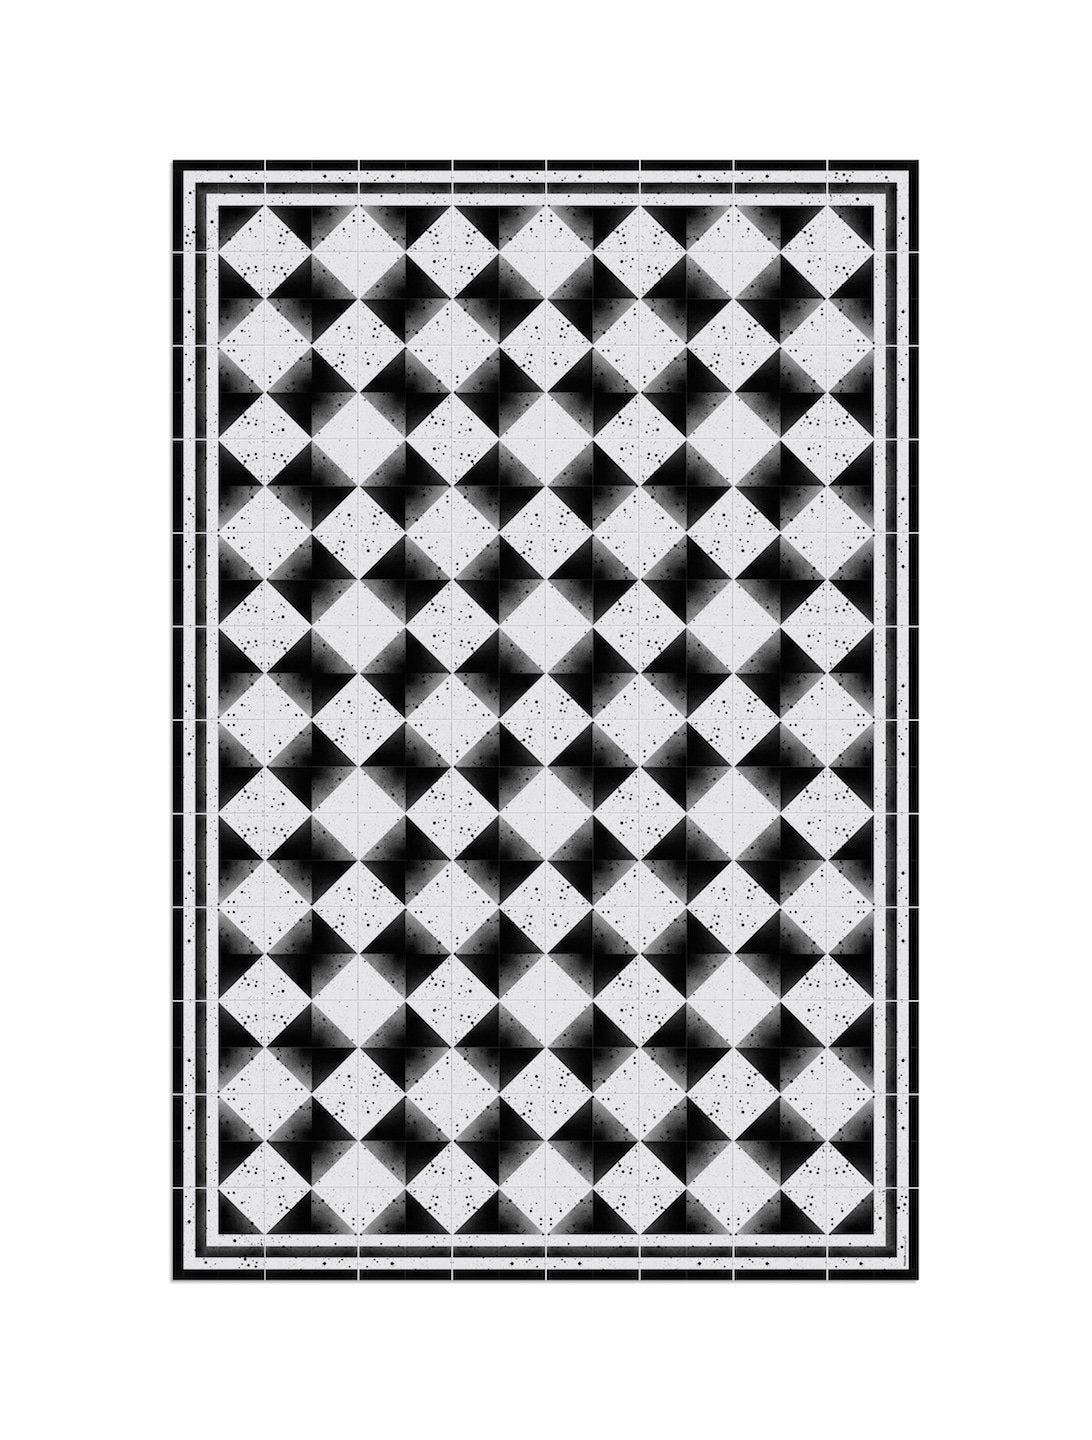 *NEW* Portaferrissa Floor Mats